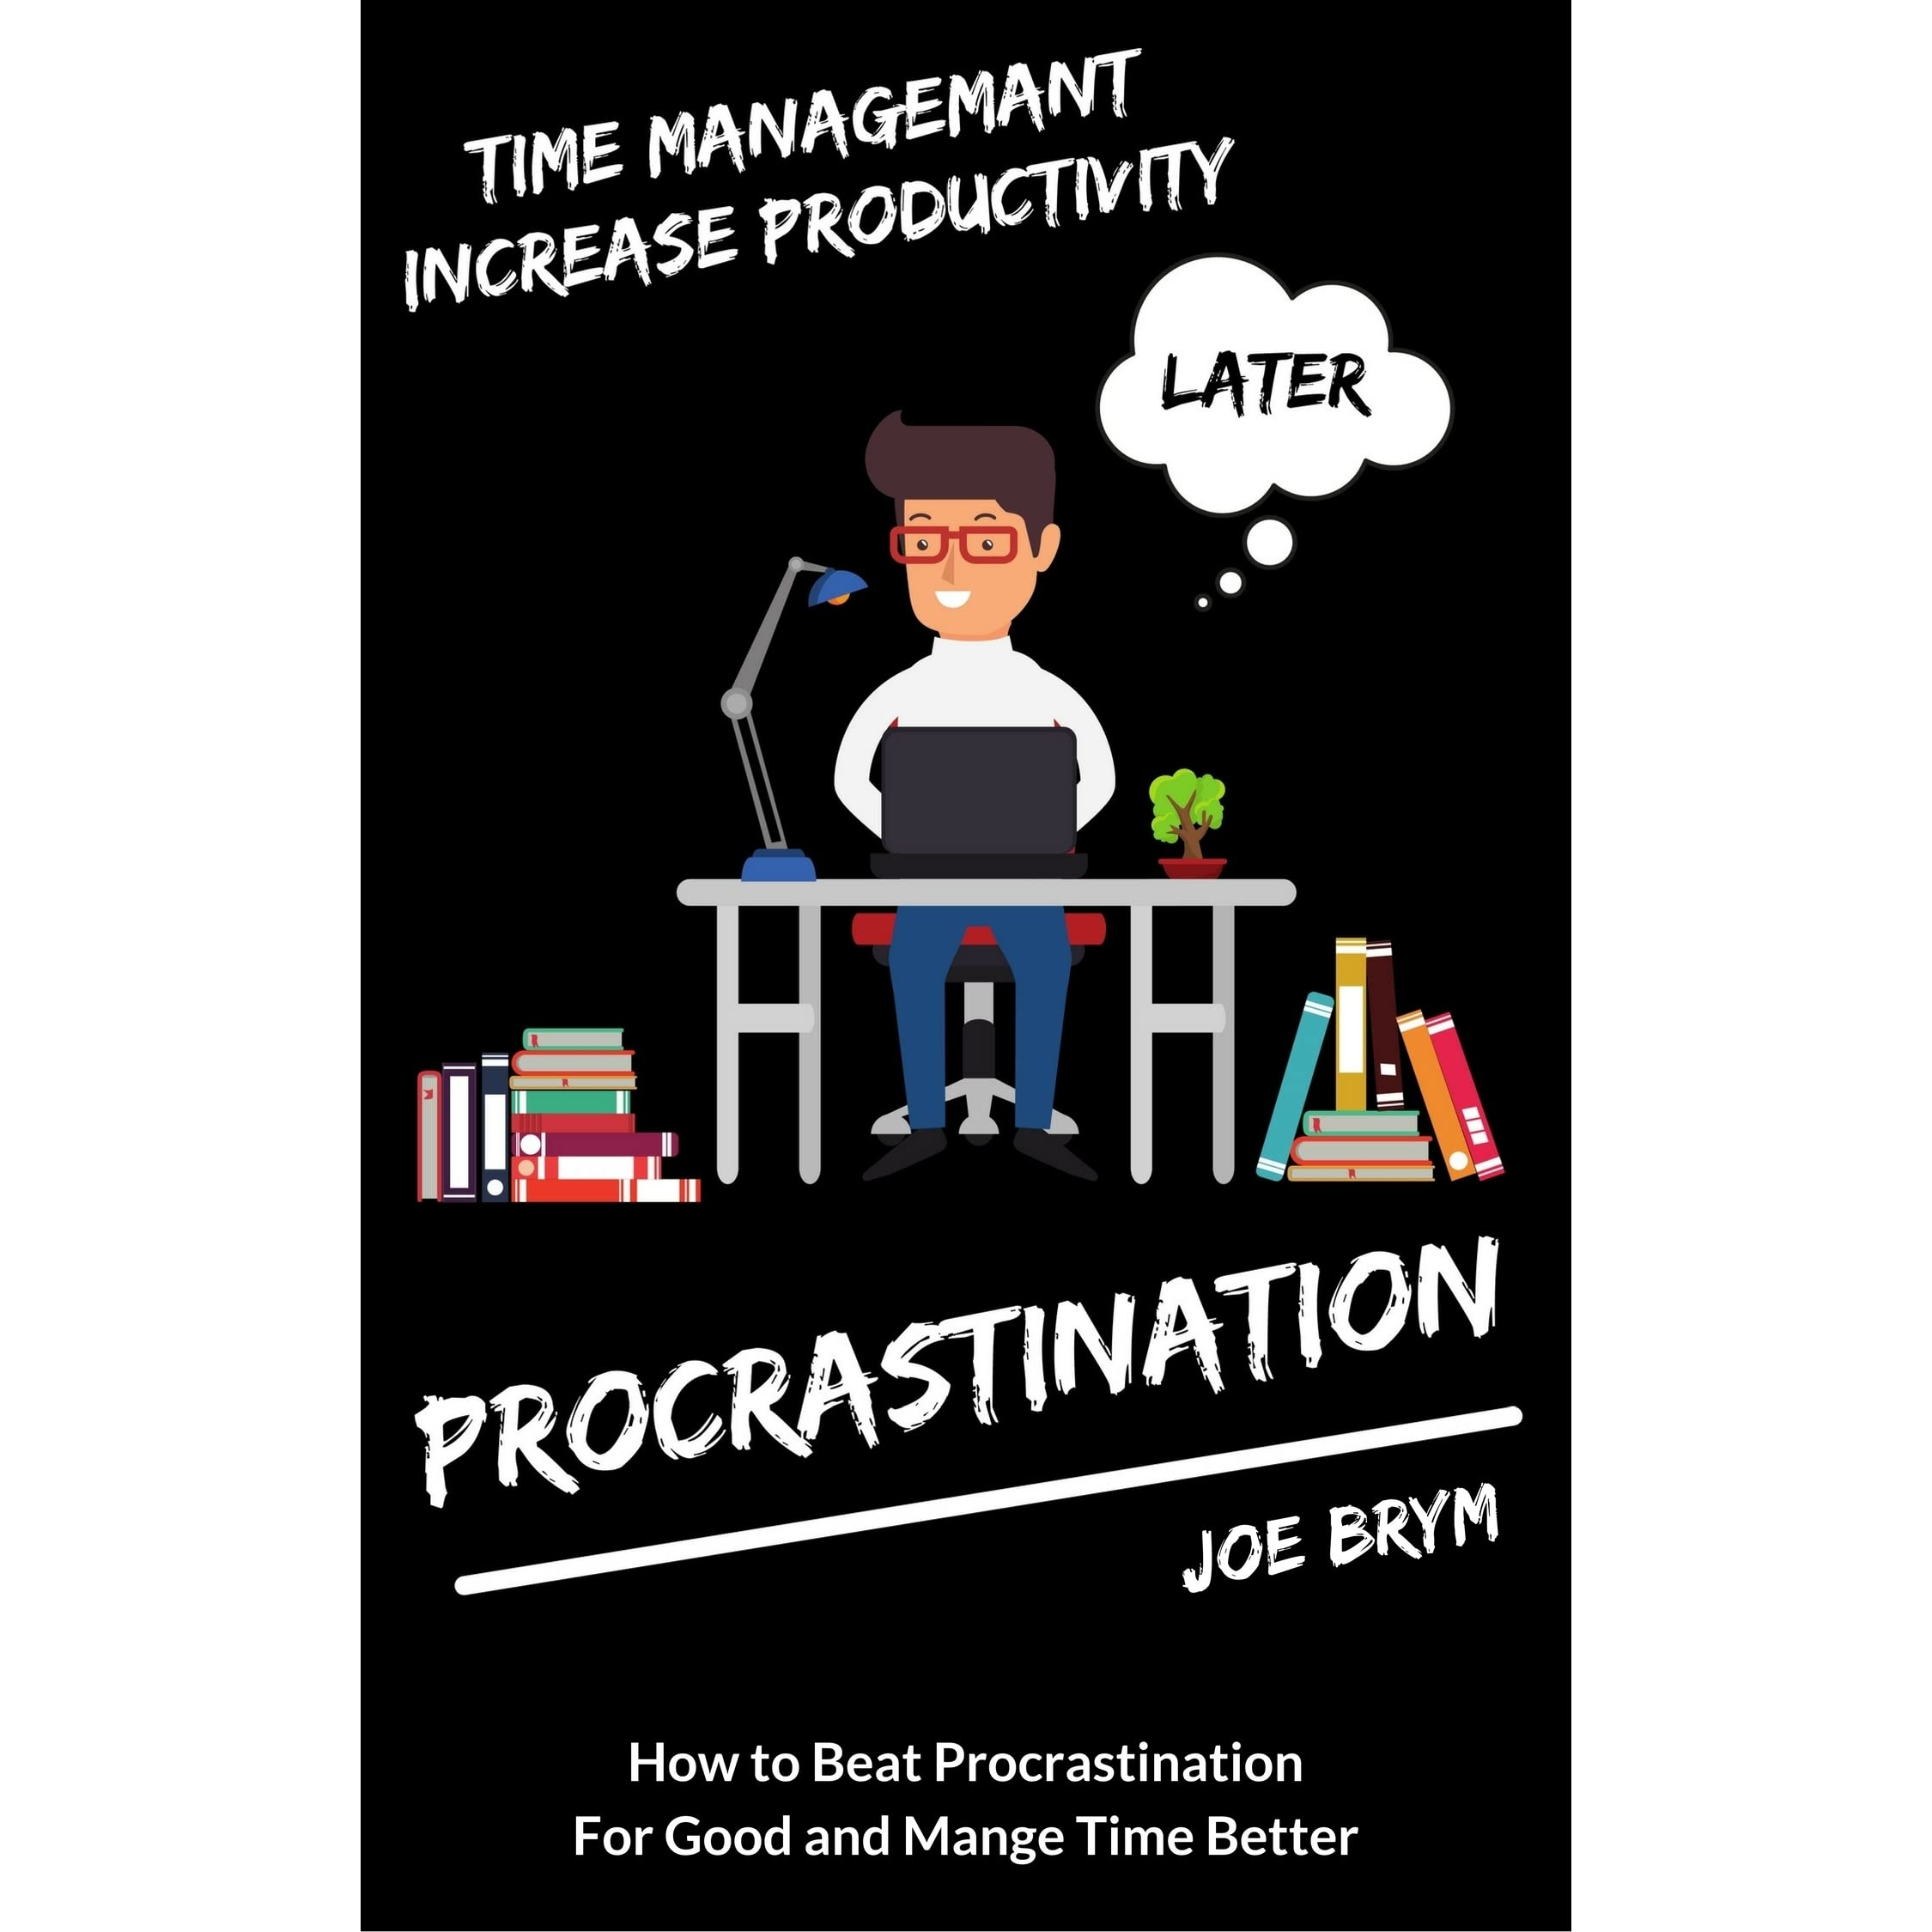 Procrastination How To Beat Procrastination For Good And Manage Time Better By Joe Brym